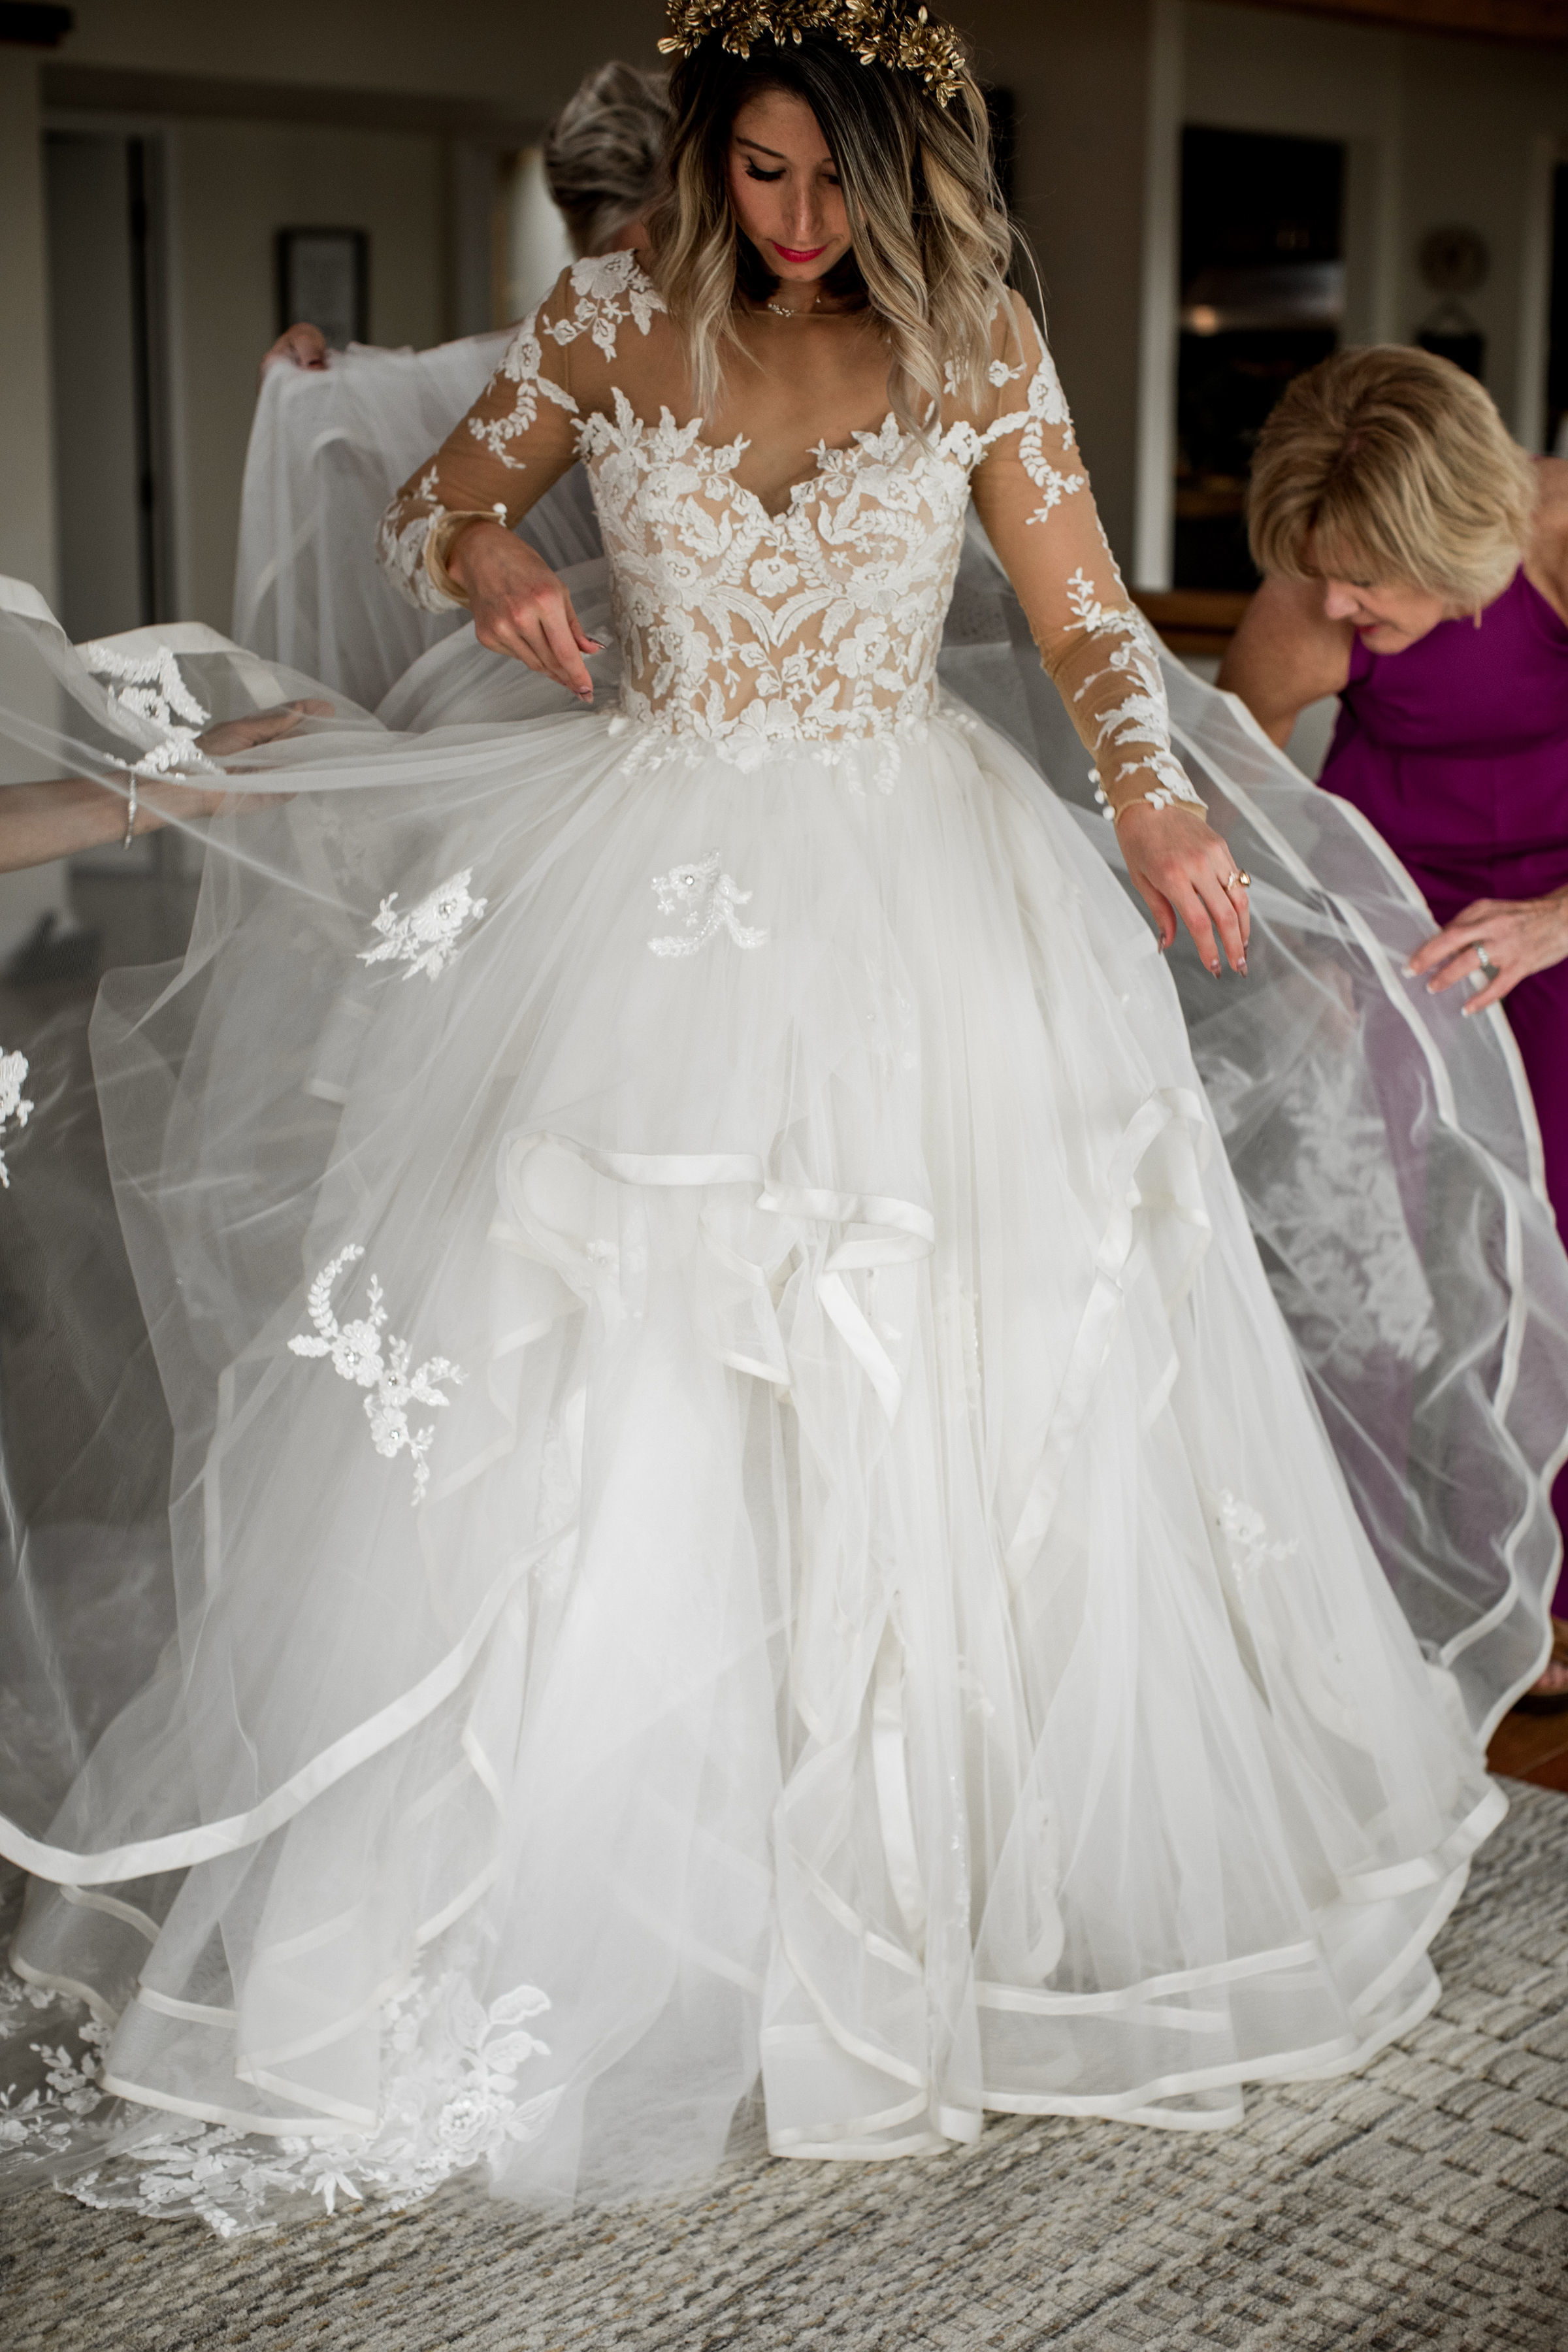 Bride customized her wedding dress with Anomalie Online Wedding Dresses with long sleeves, illusion mesh, floral lace, and voluminous tiers.